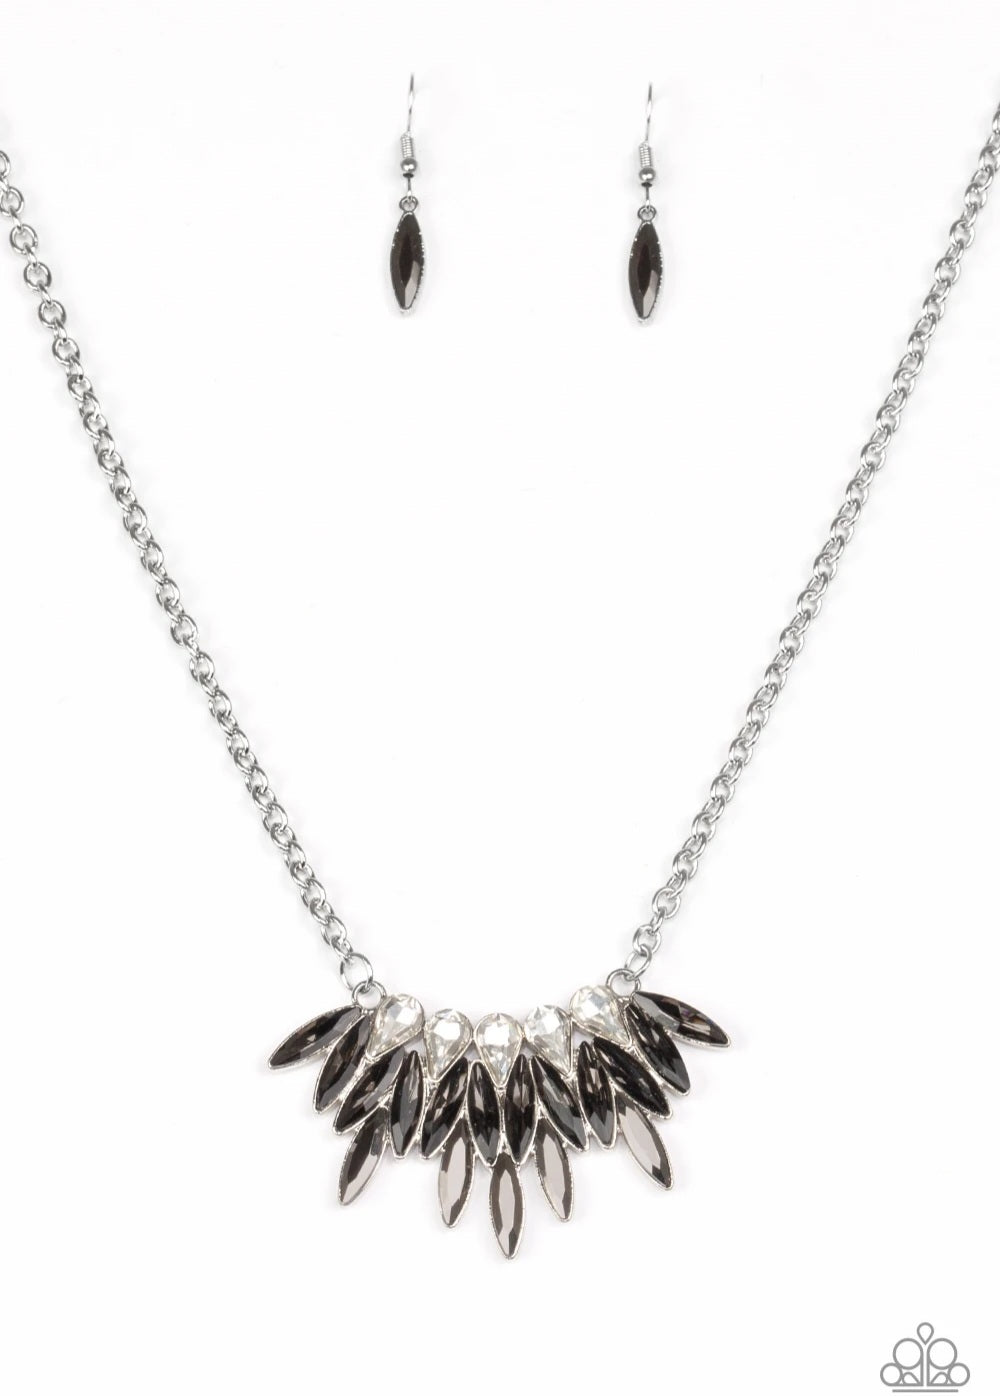 Crown Couture Silver Necklace